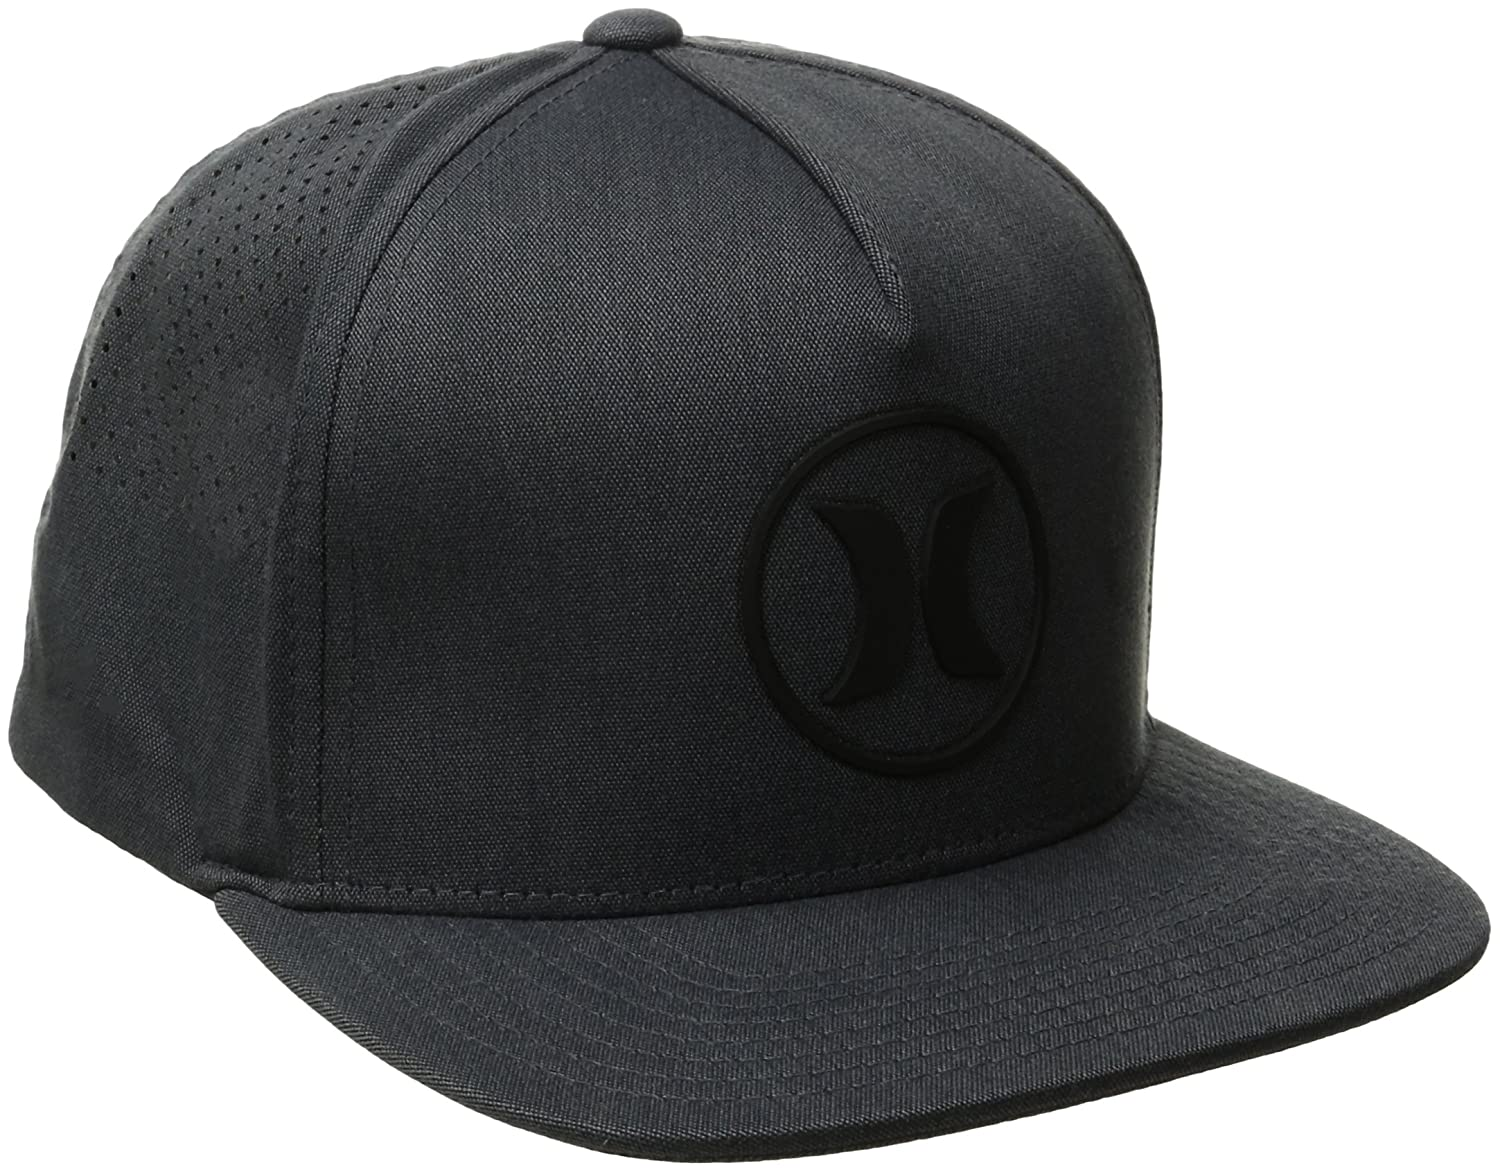 check out 30e65 b81c2 Amazon.com  Hurley MHA0005950 Mens Dri-Fit Icon 2.0 Cap, Black-OS  Clothing